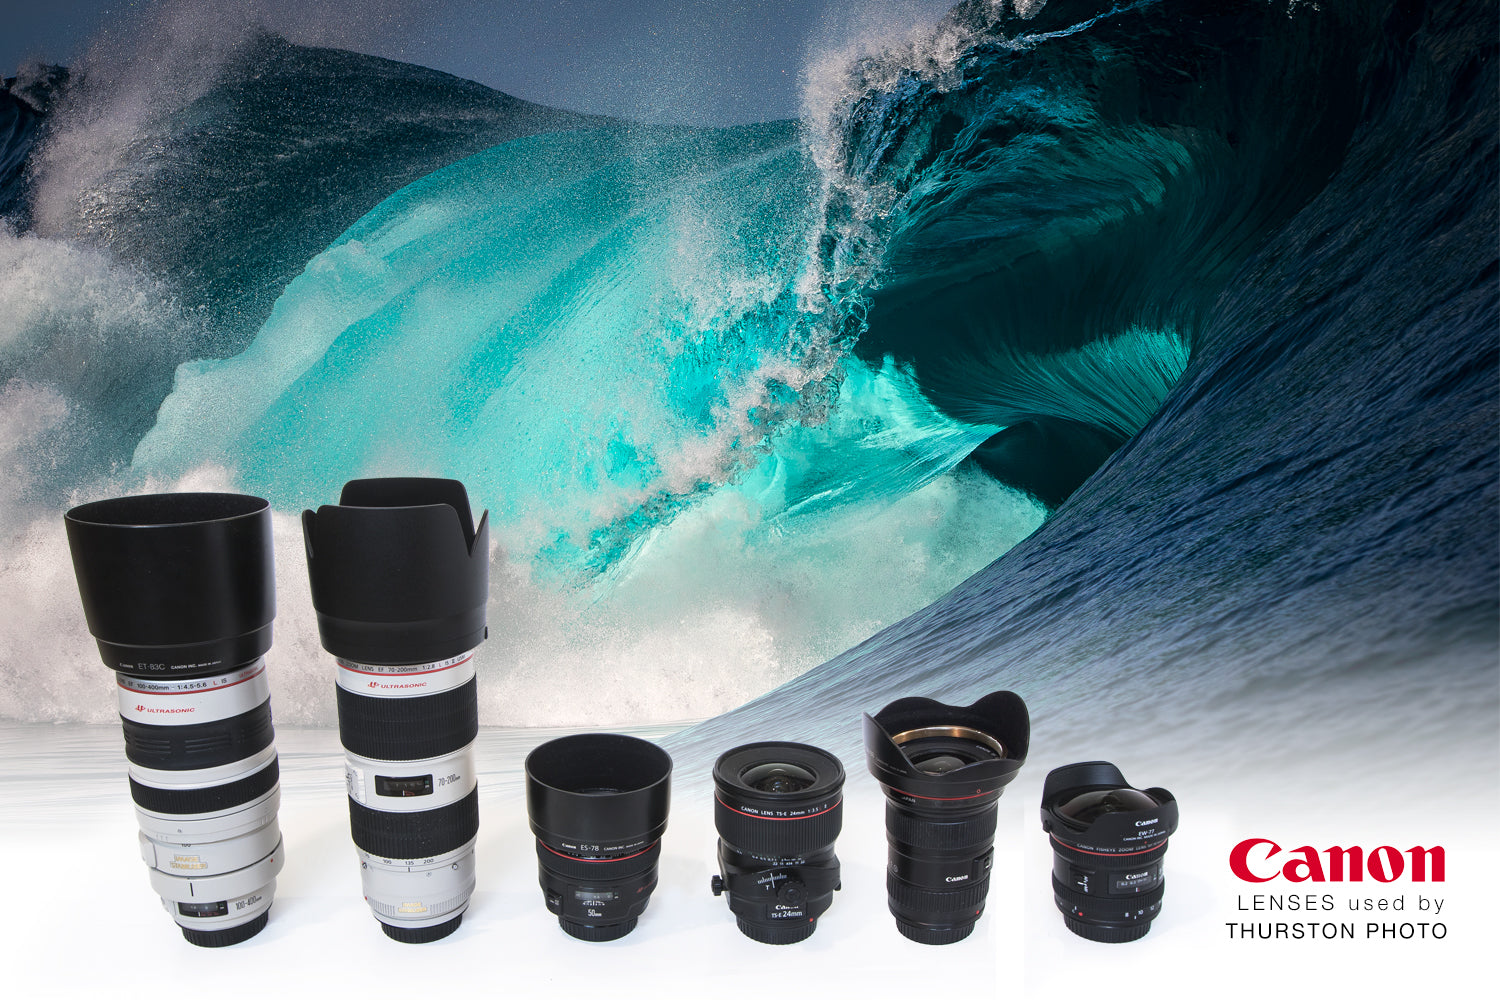 Canon Lenses used for ocean and adventure photography by Thurston Photo